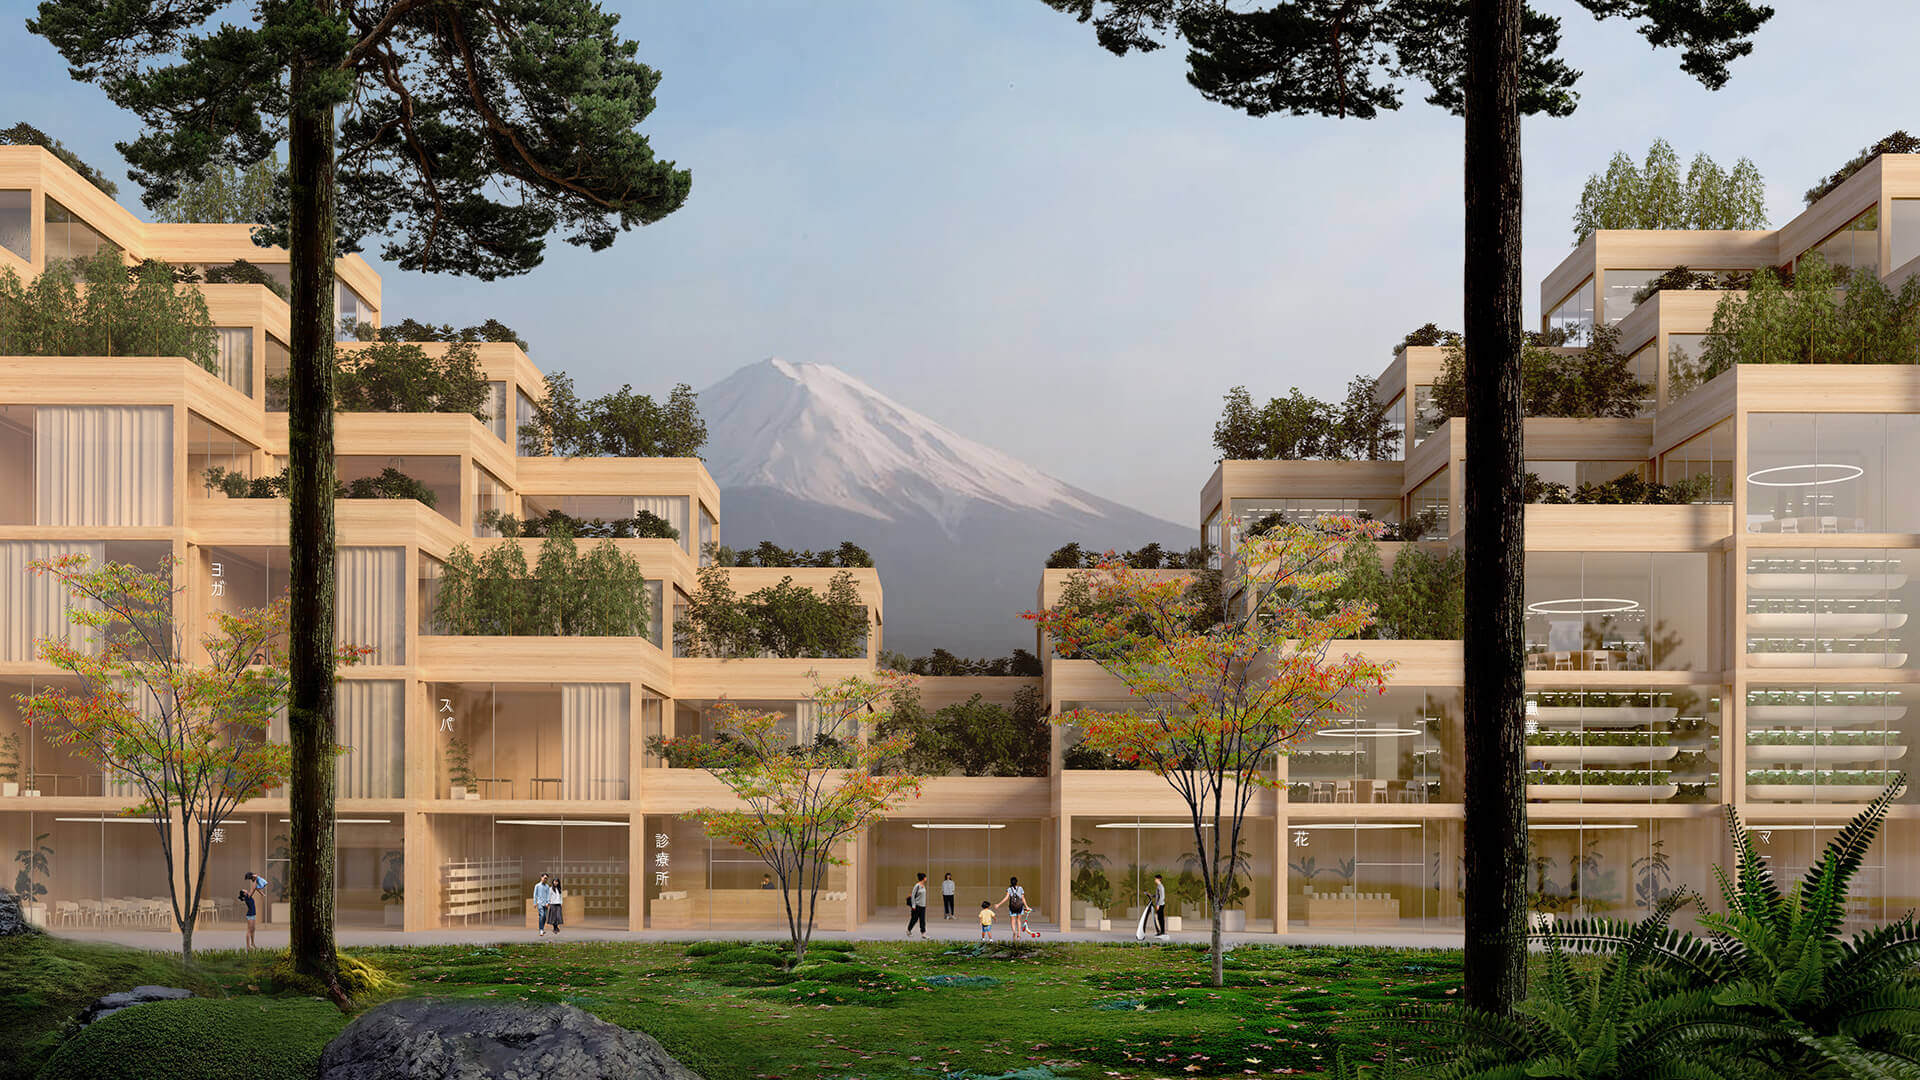 The concept design incorporates low cost materials and traditional Japanese wood techniques at the foothills of Mount Fuji in Japan | Woven City | Bjarke Ingels Group | STIRworld